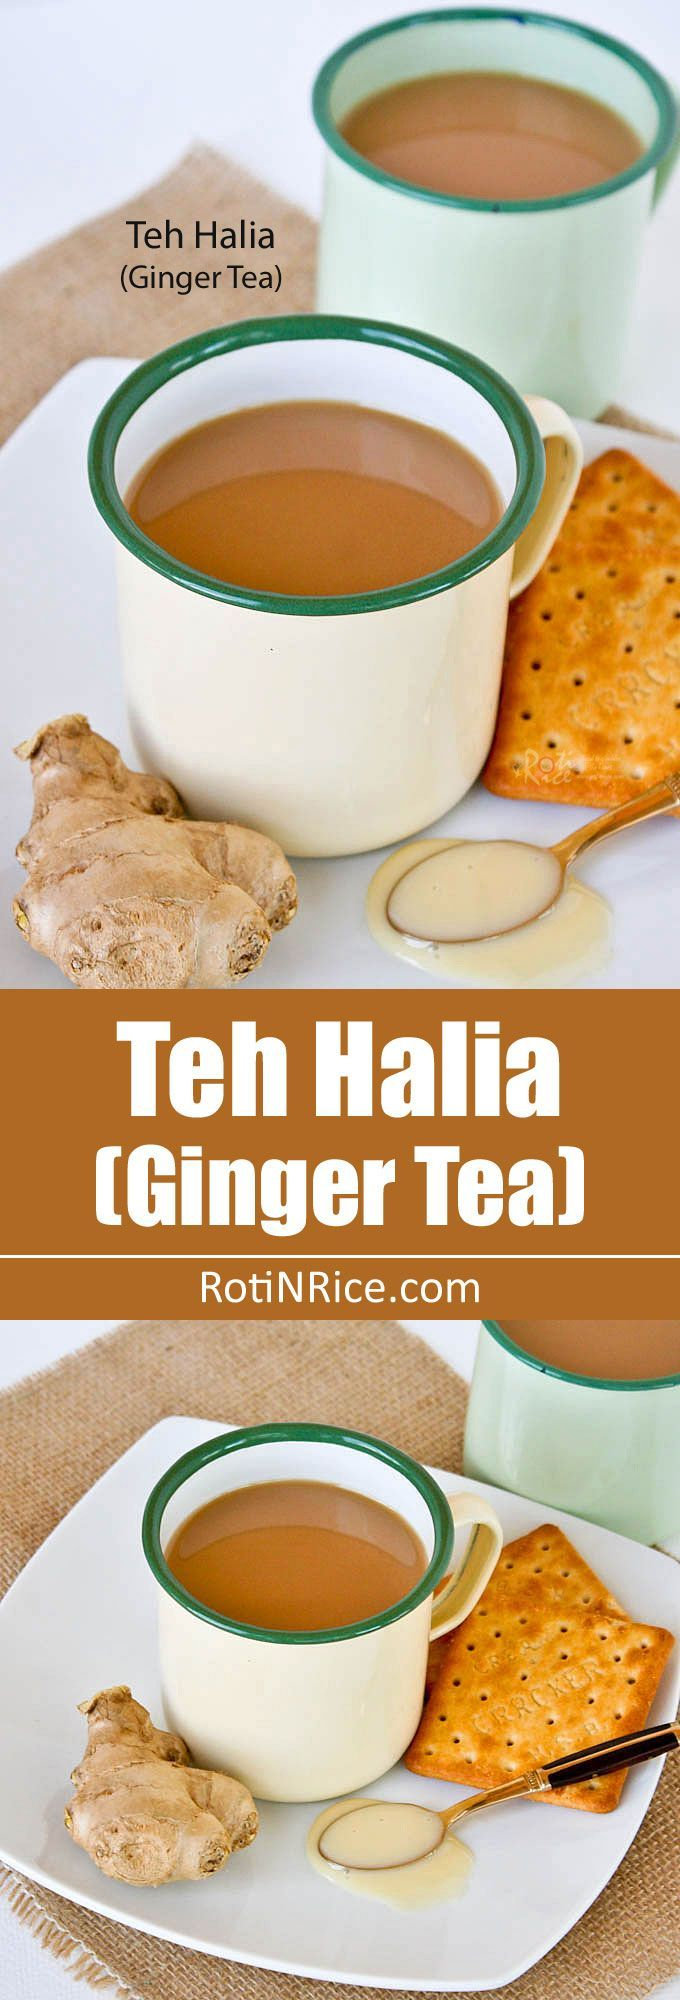 Teh Halia Ginger Tea And A Winner Recipe Ginger Tea Recipes Eat